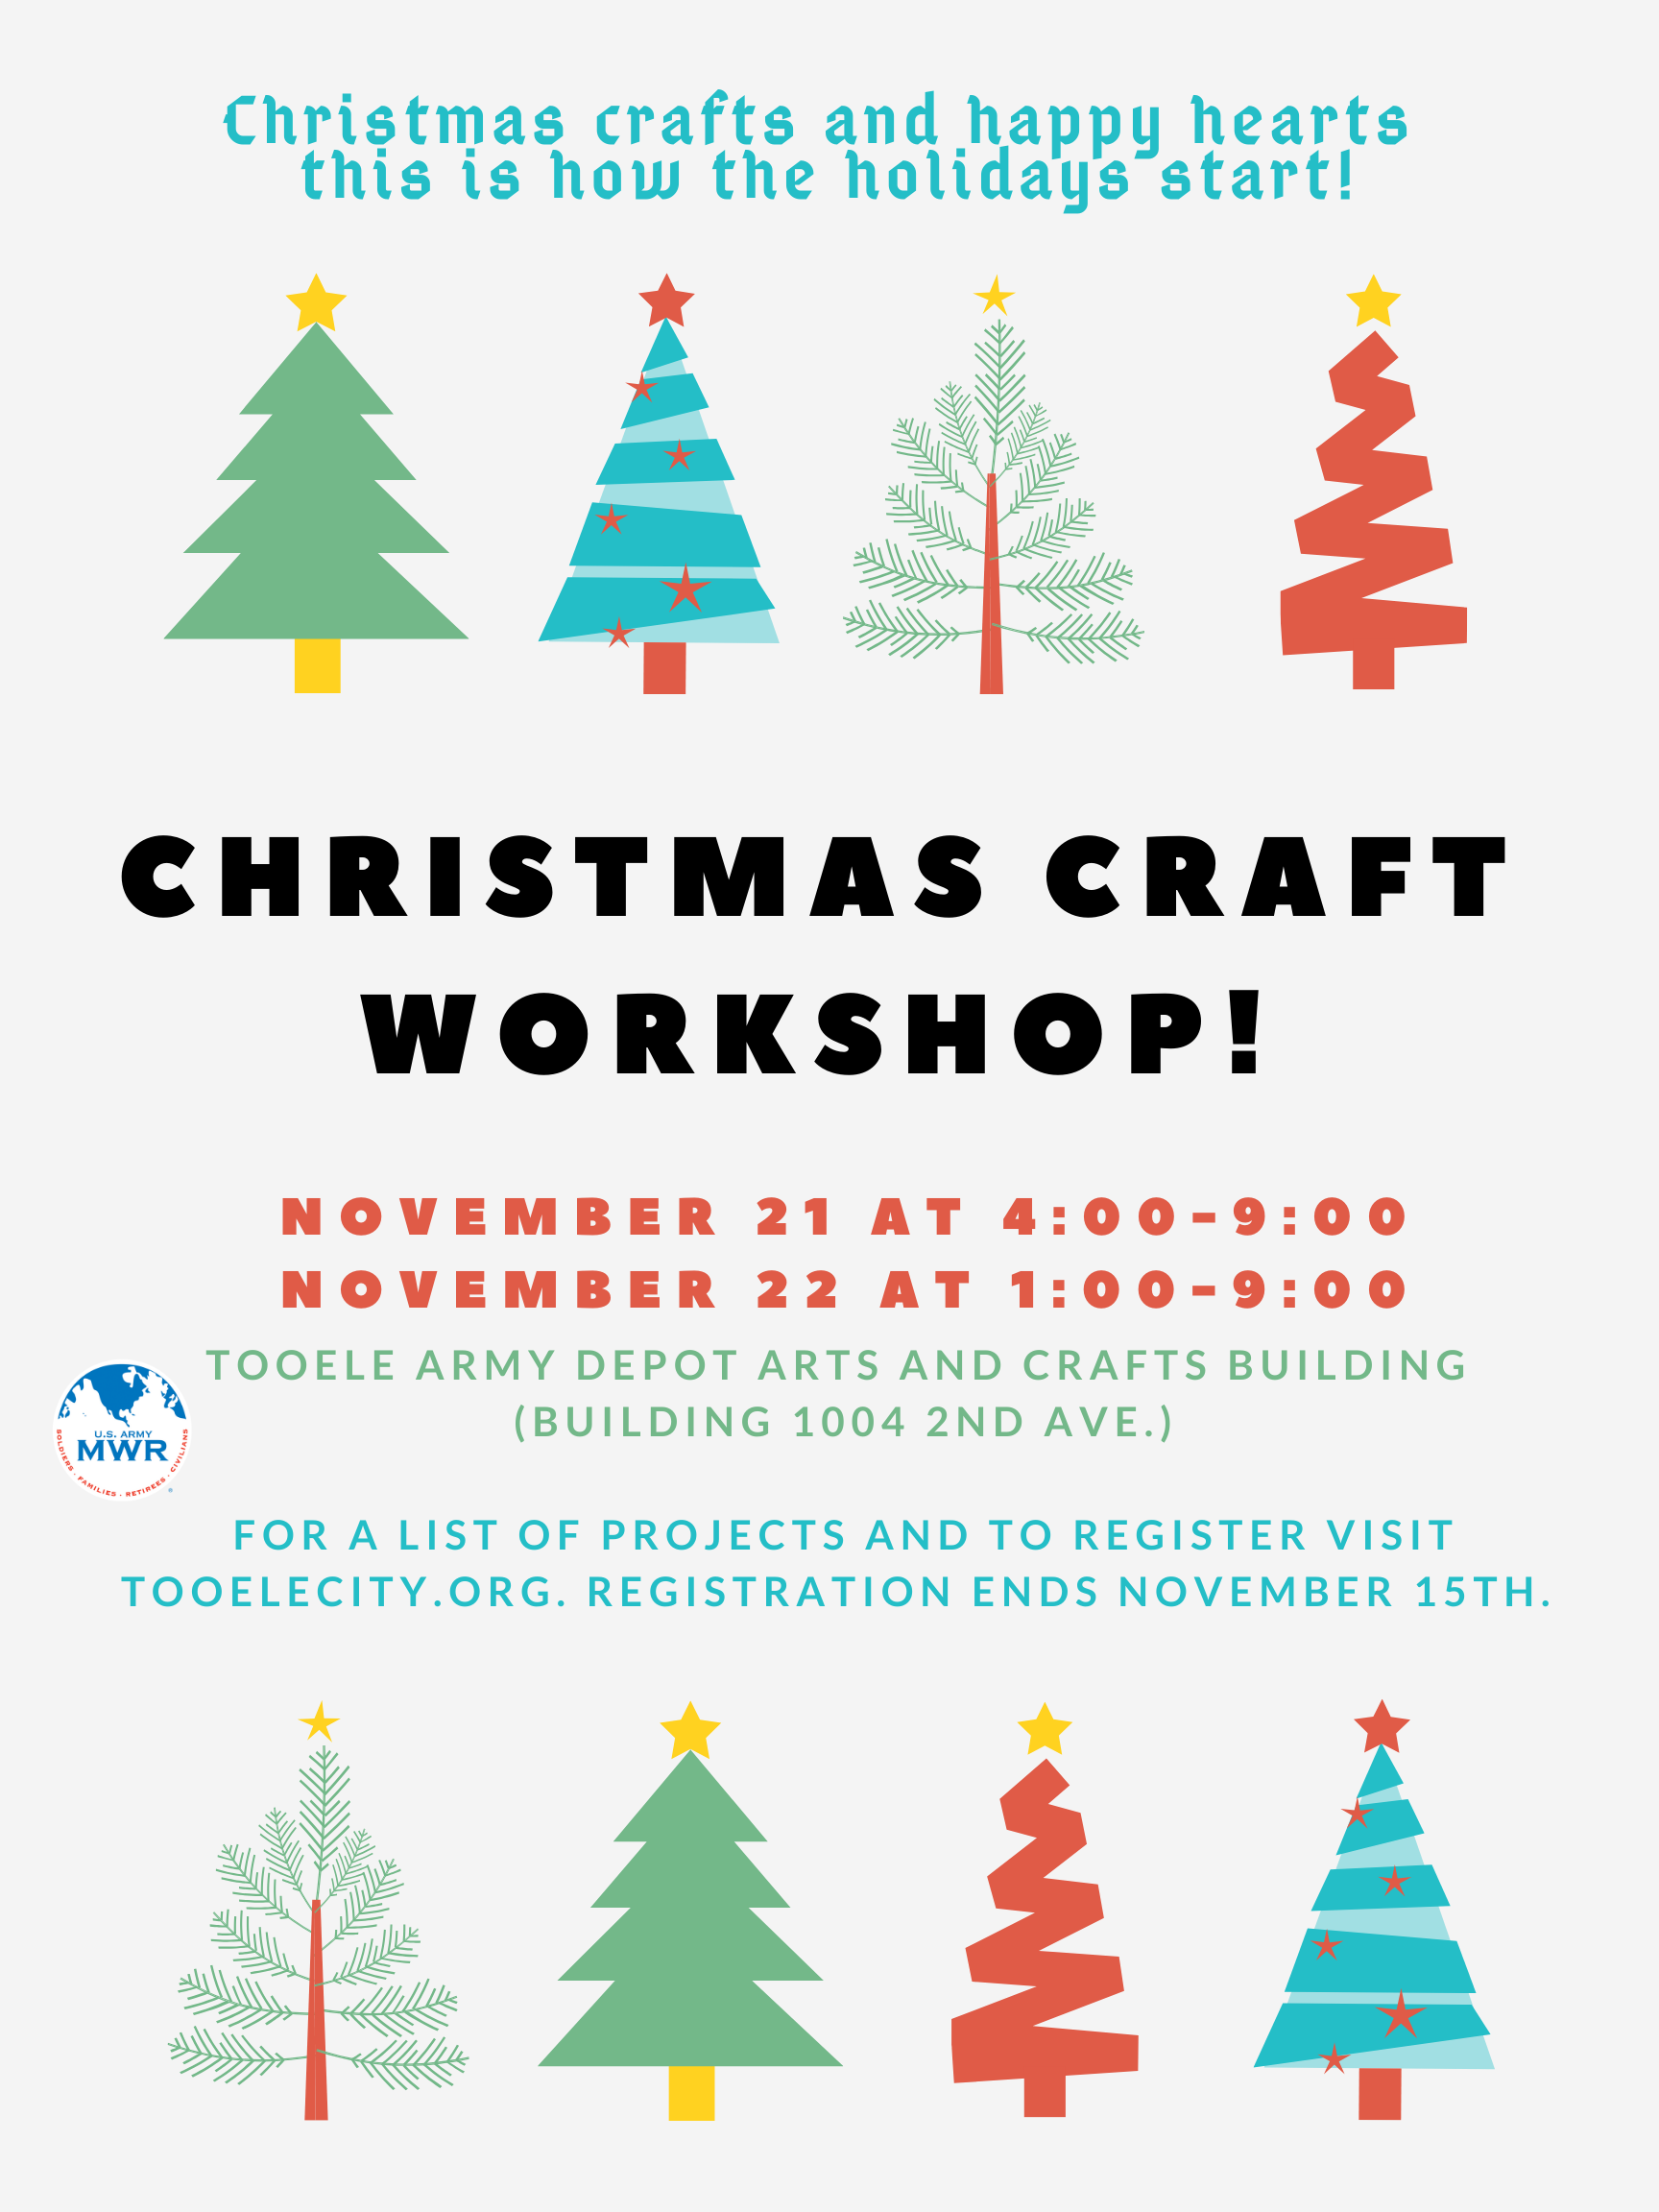 Christmas Craft Workshop 2019 @ Tooele Army Depot Arts & Craft Center (Building 1004 2nd Avenue) | Tooele | Utah | United States